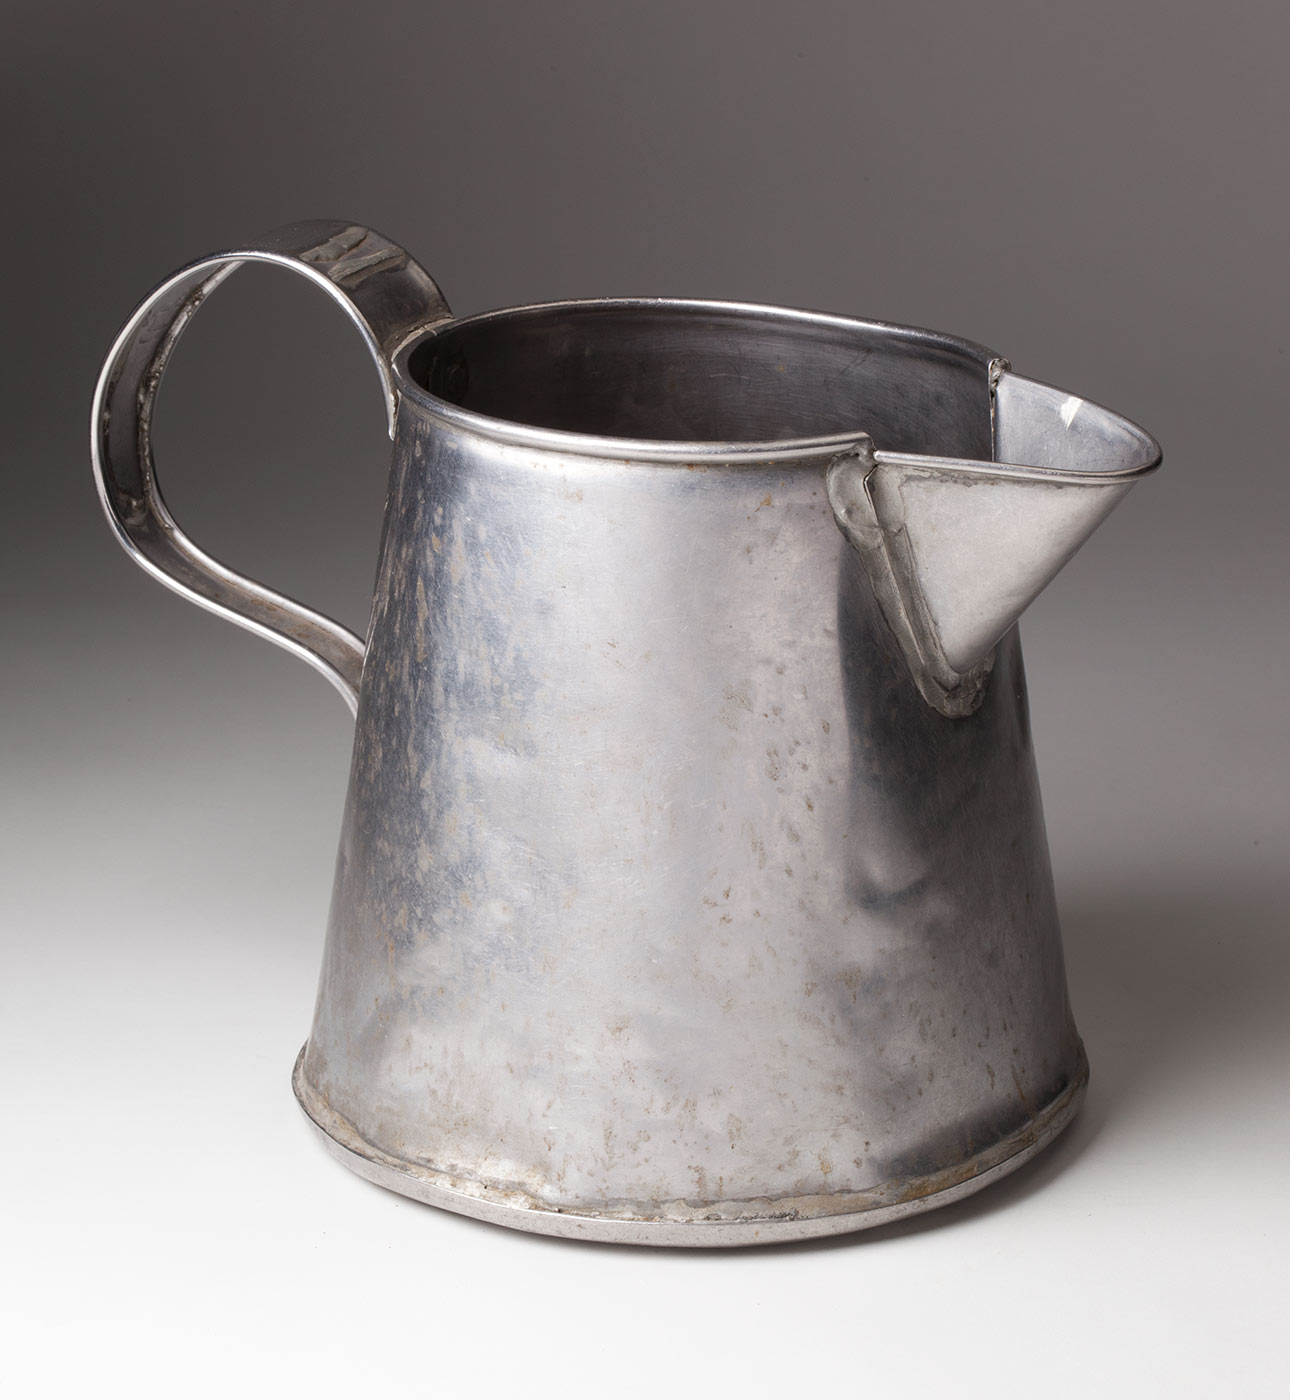 A silver-coloured metal jug with a rounded handle and pouring lip. - click to view larger image